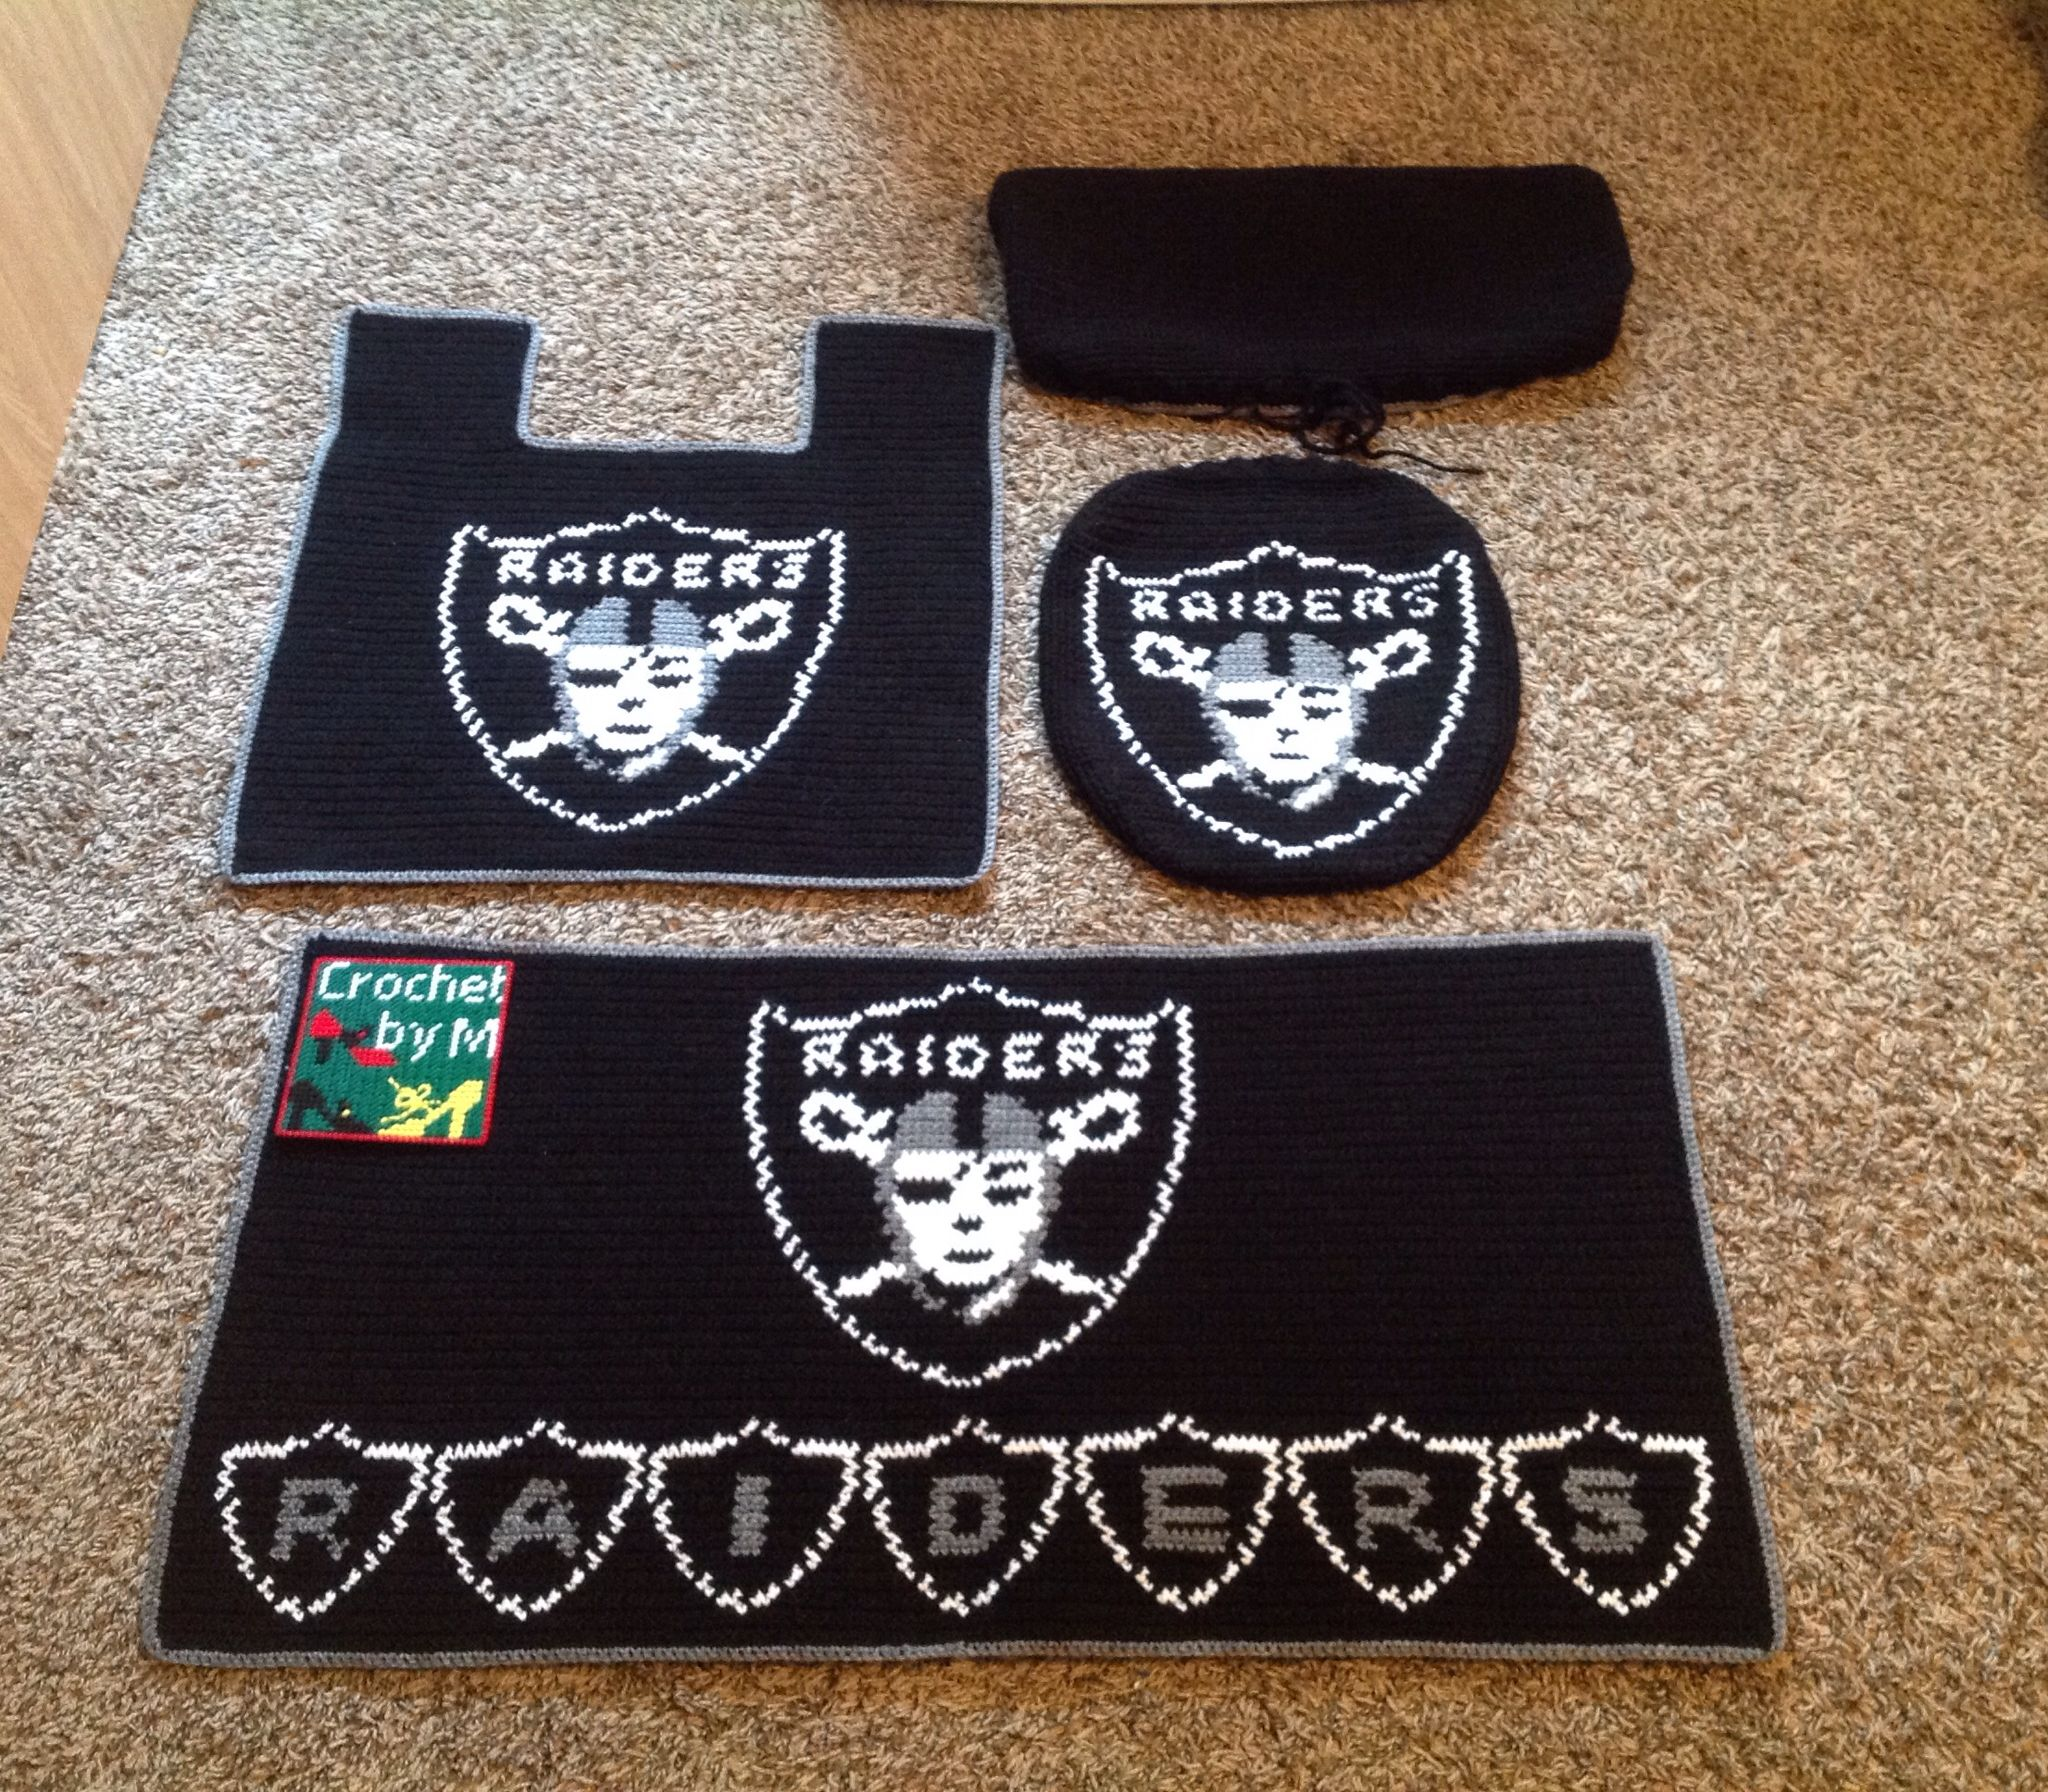 Crochet Raiders Bathroom Set